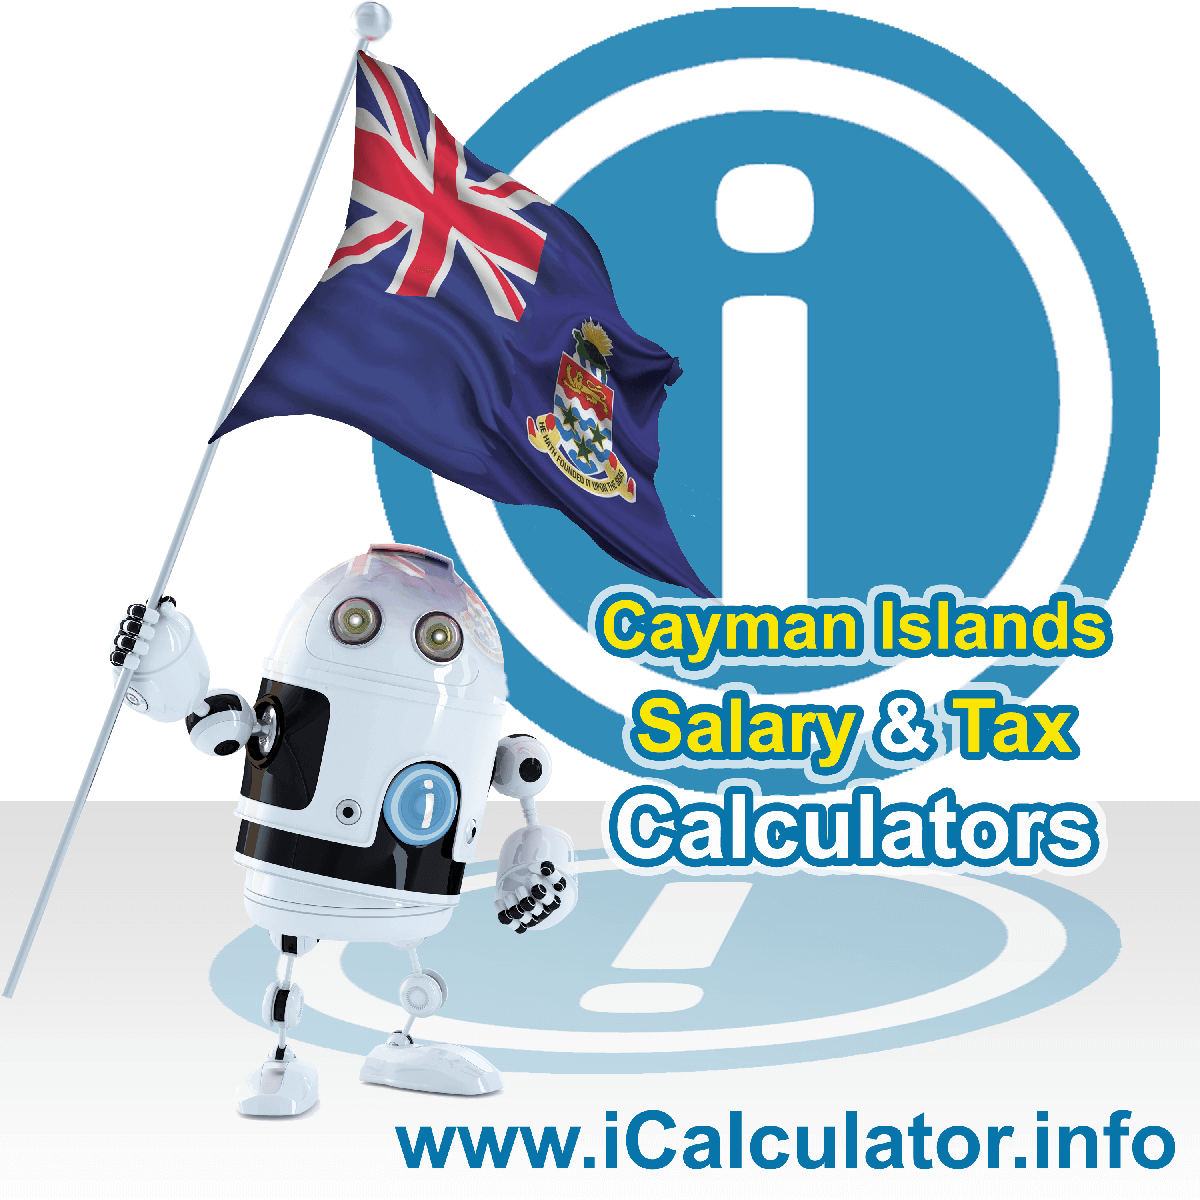 Cayman Islands Tax Calculator. This image shows the Cayman Islands flag and information relating to the tax formula for the Cayman Islands Salary Calculator